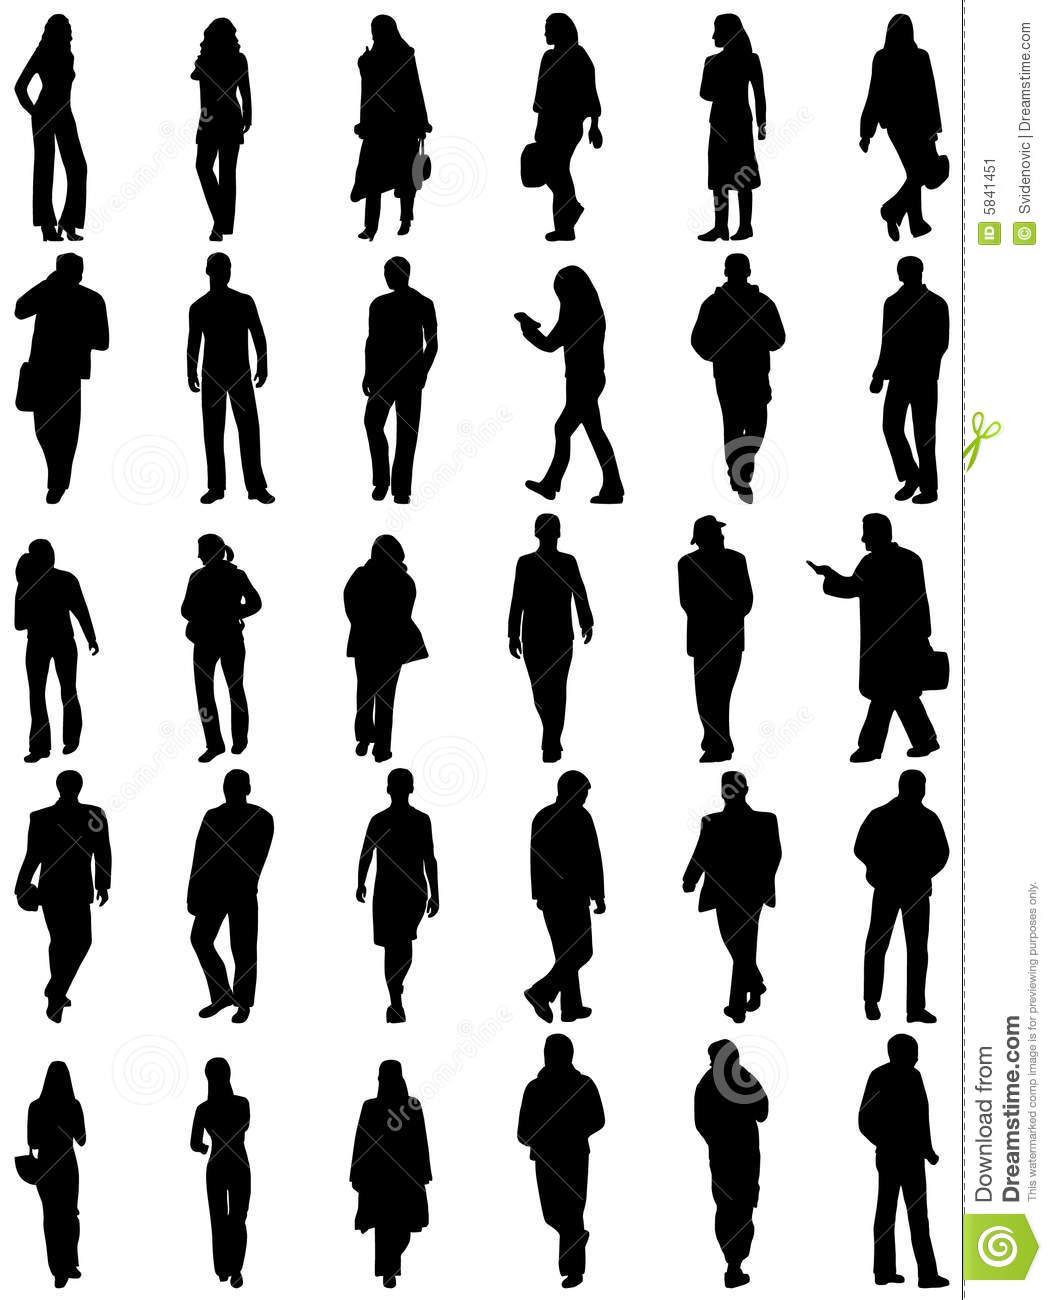 Architecture People people silhouettes stock image - image: 5841451